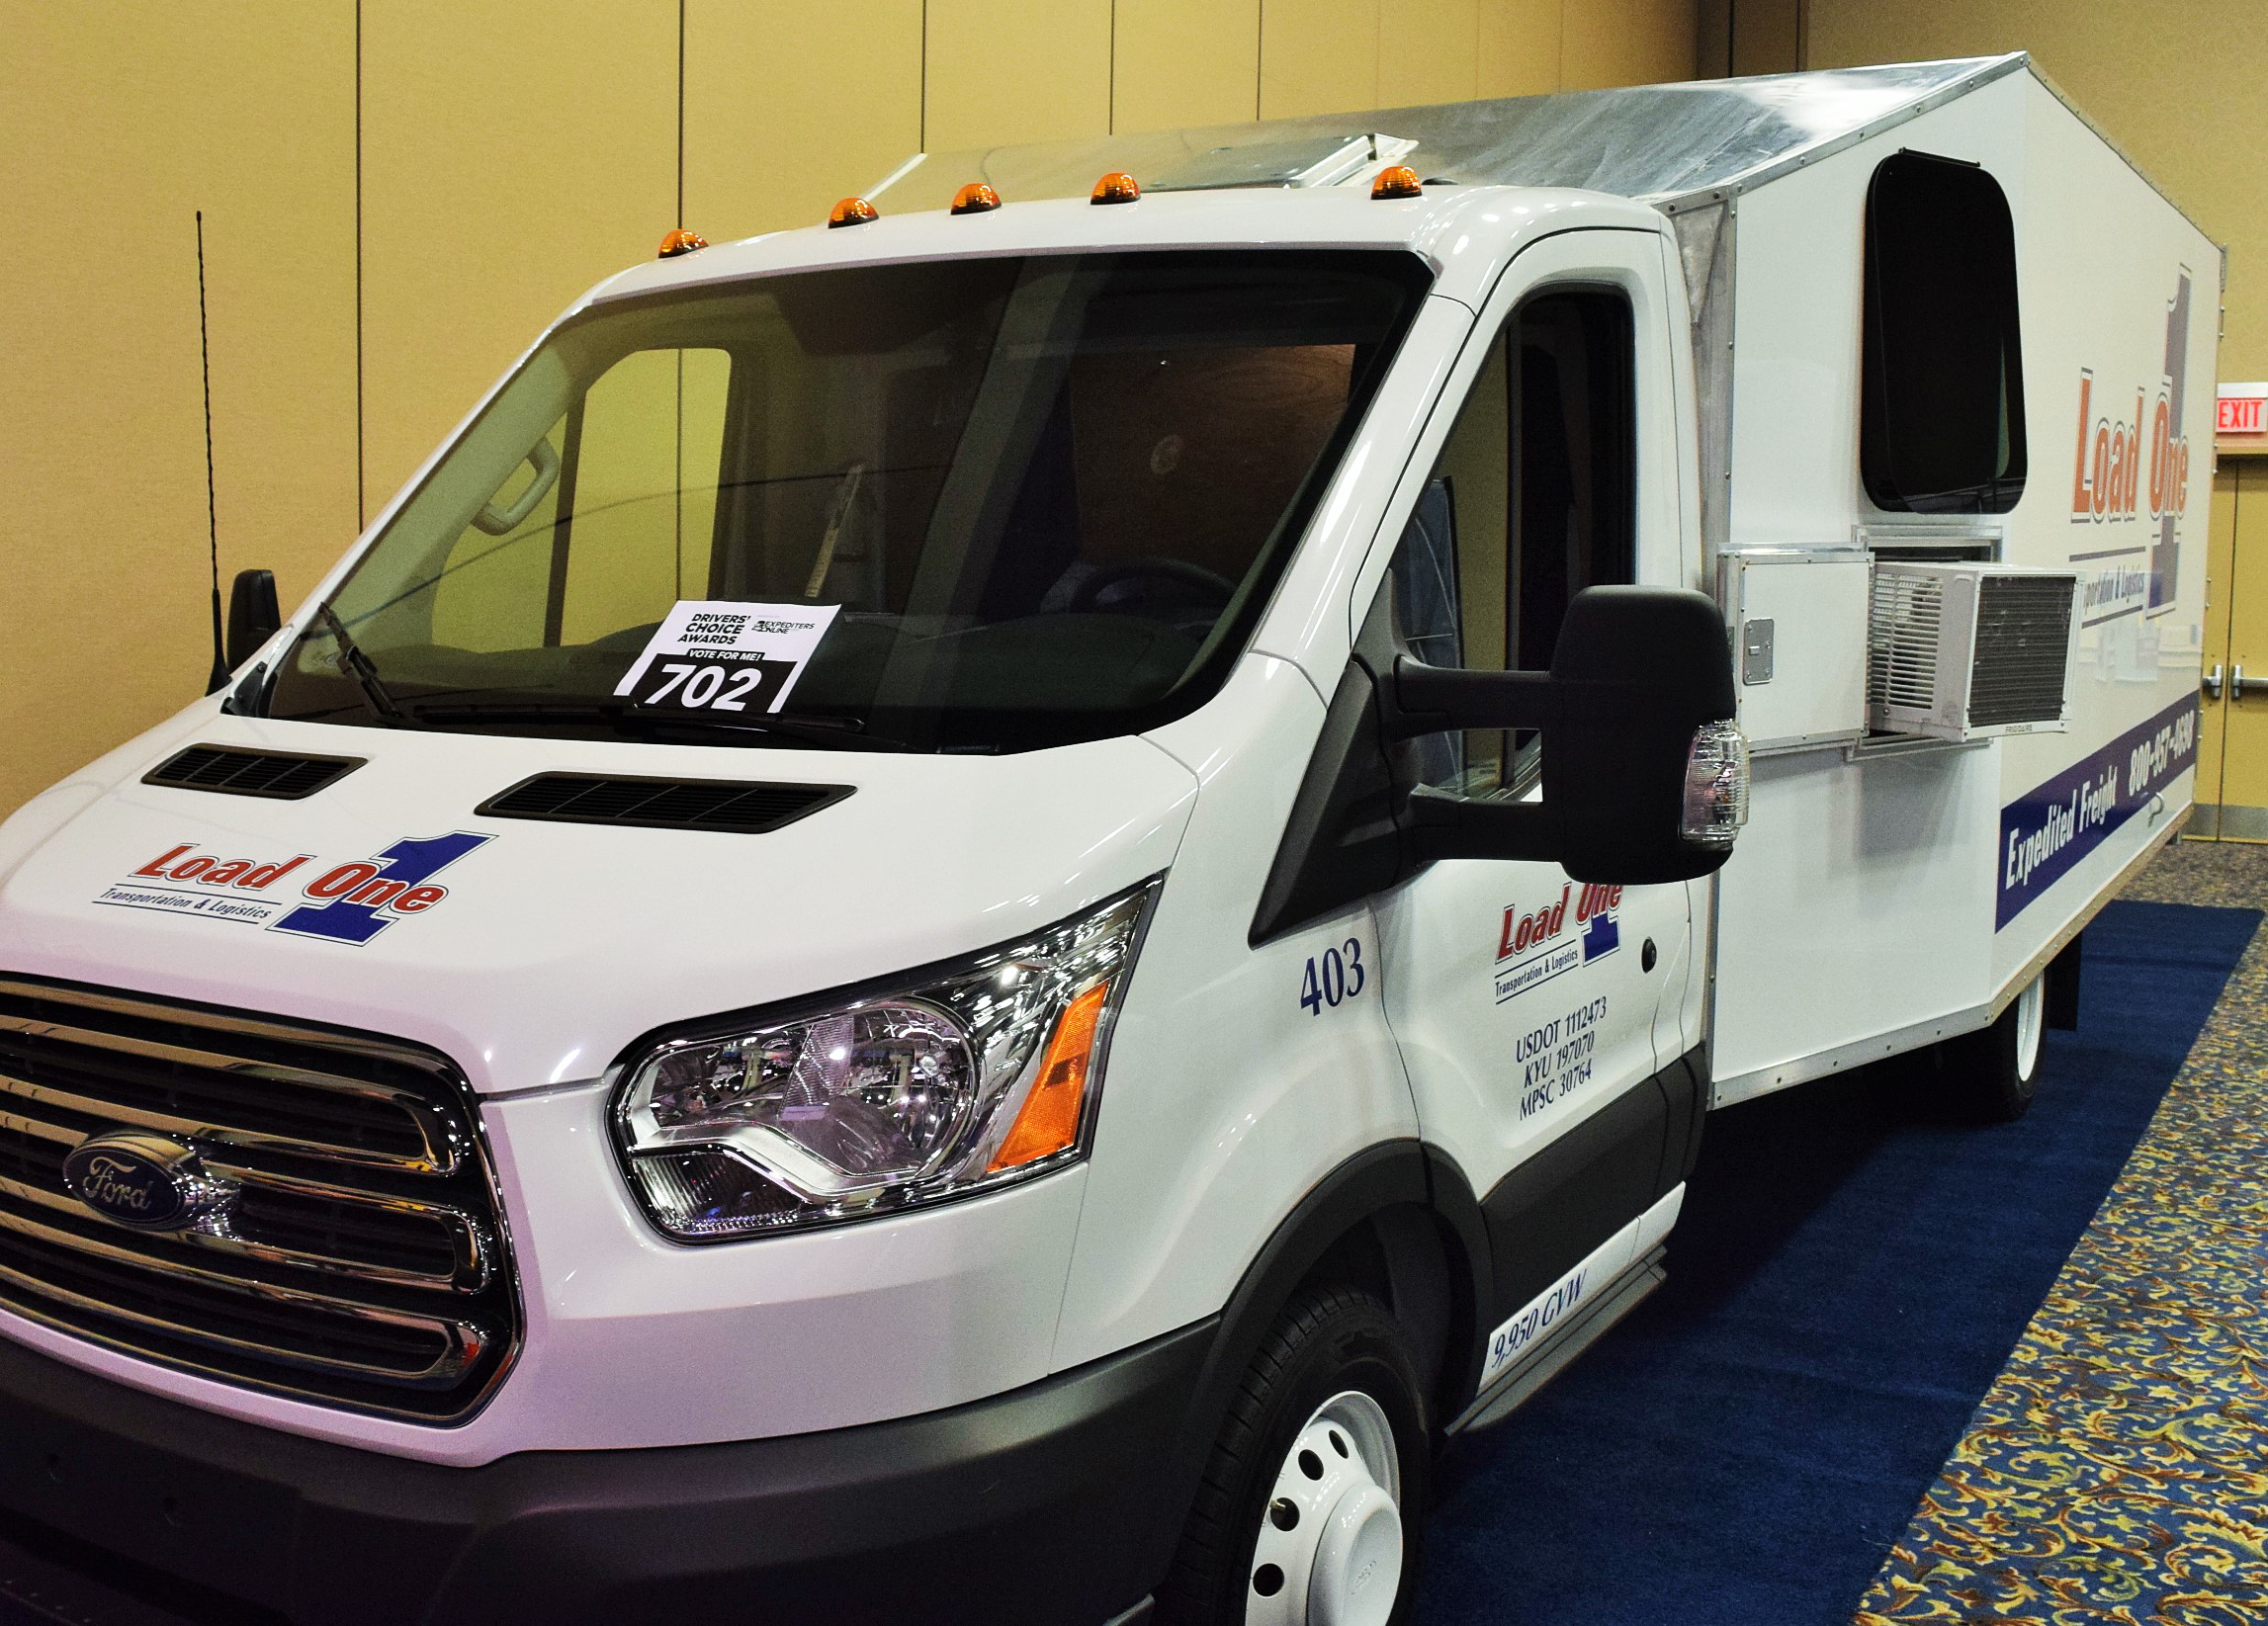 One cargo van owner's competitive edge in vehicle configuration